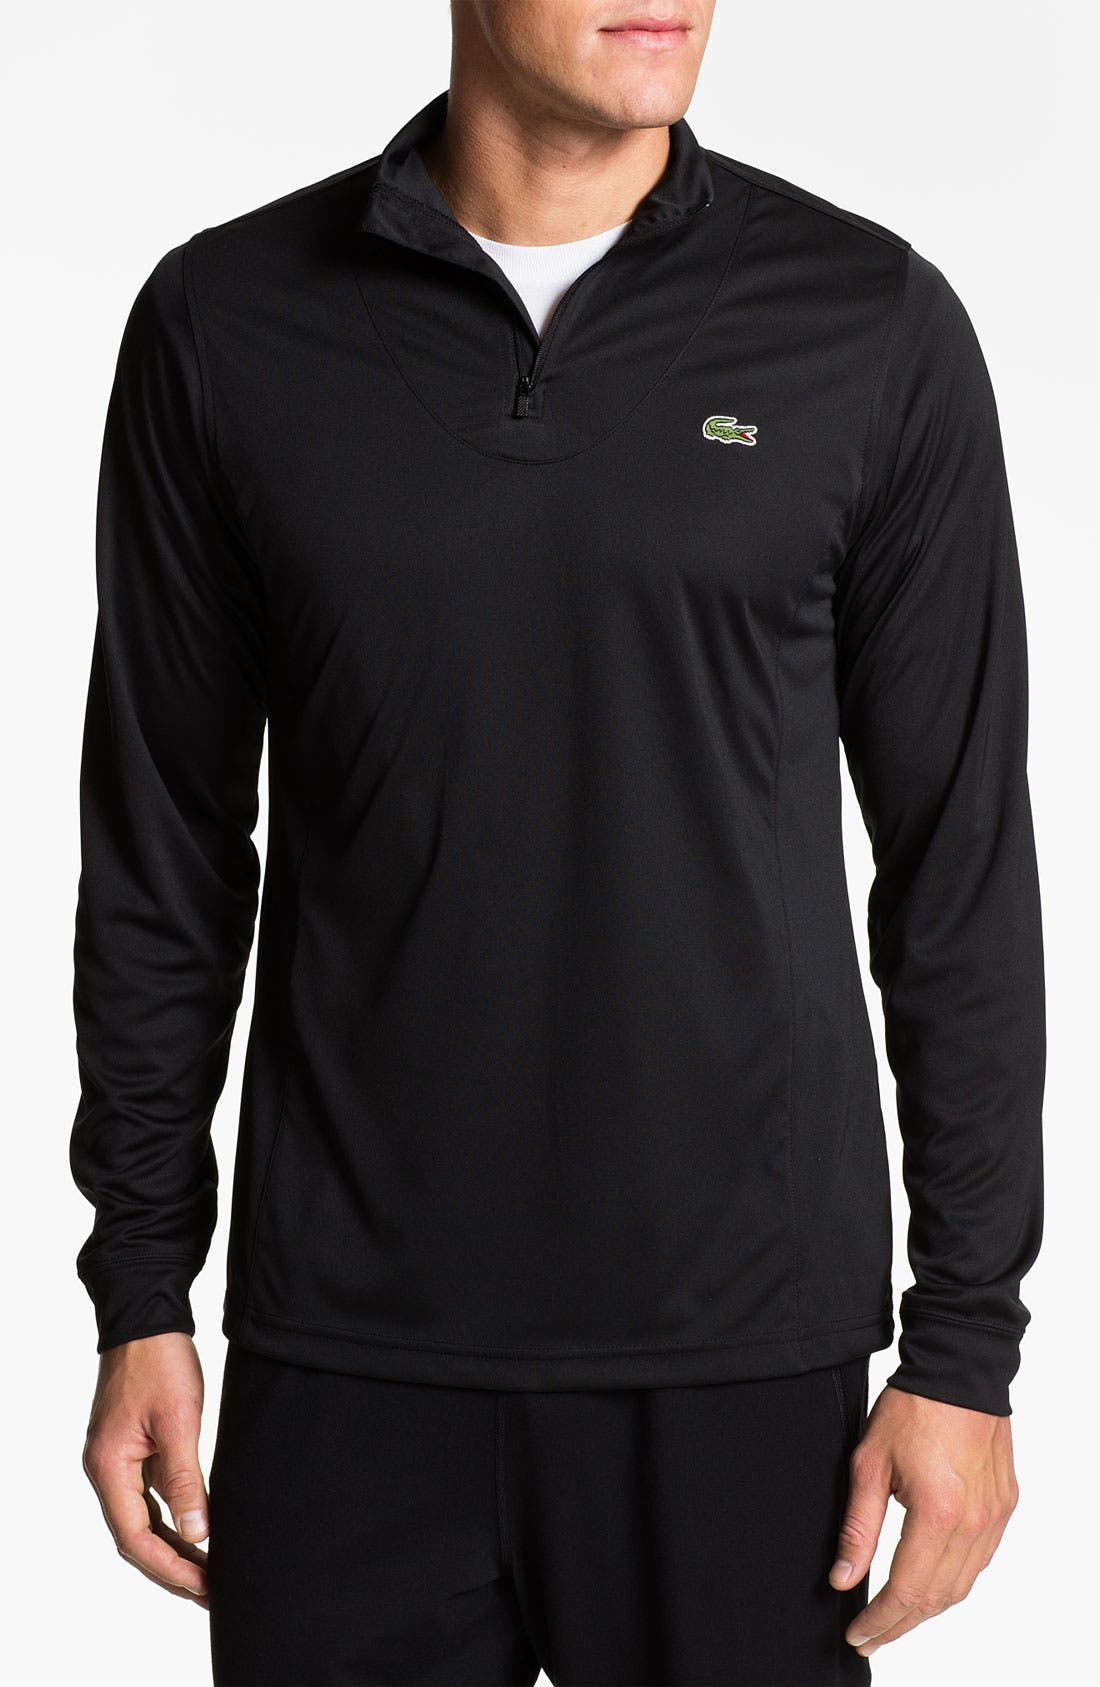 Alternate Image 1 Selected - Lacoste 'Super Dry' Quarter Zip Shirt